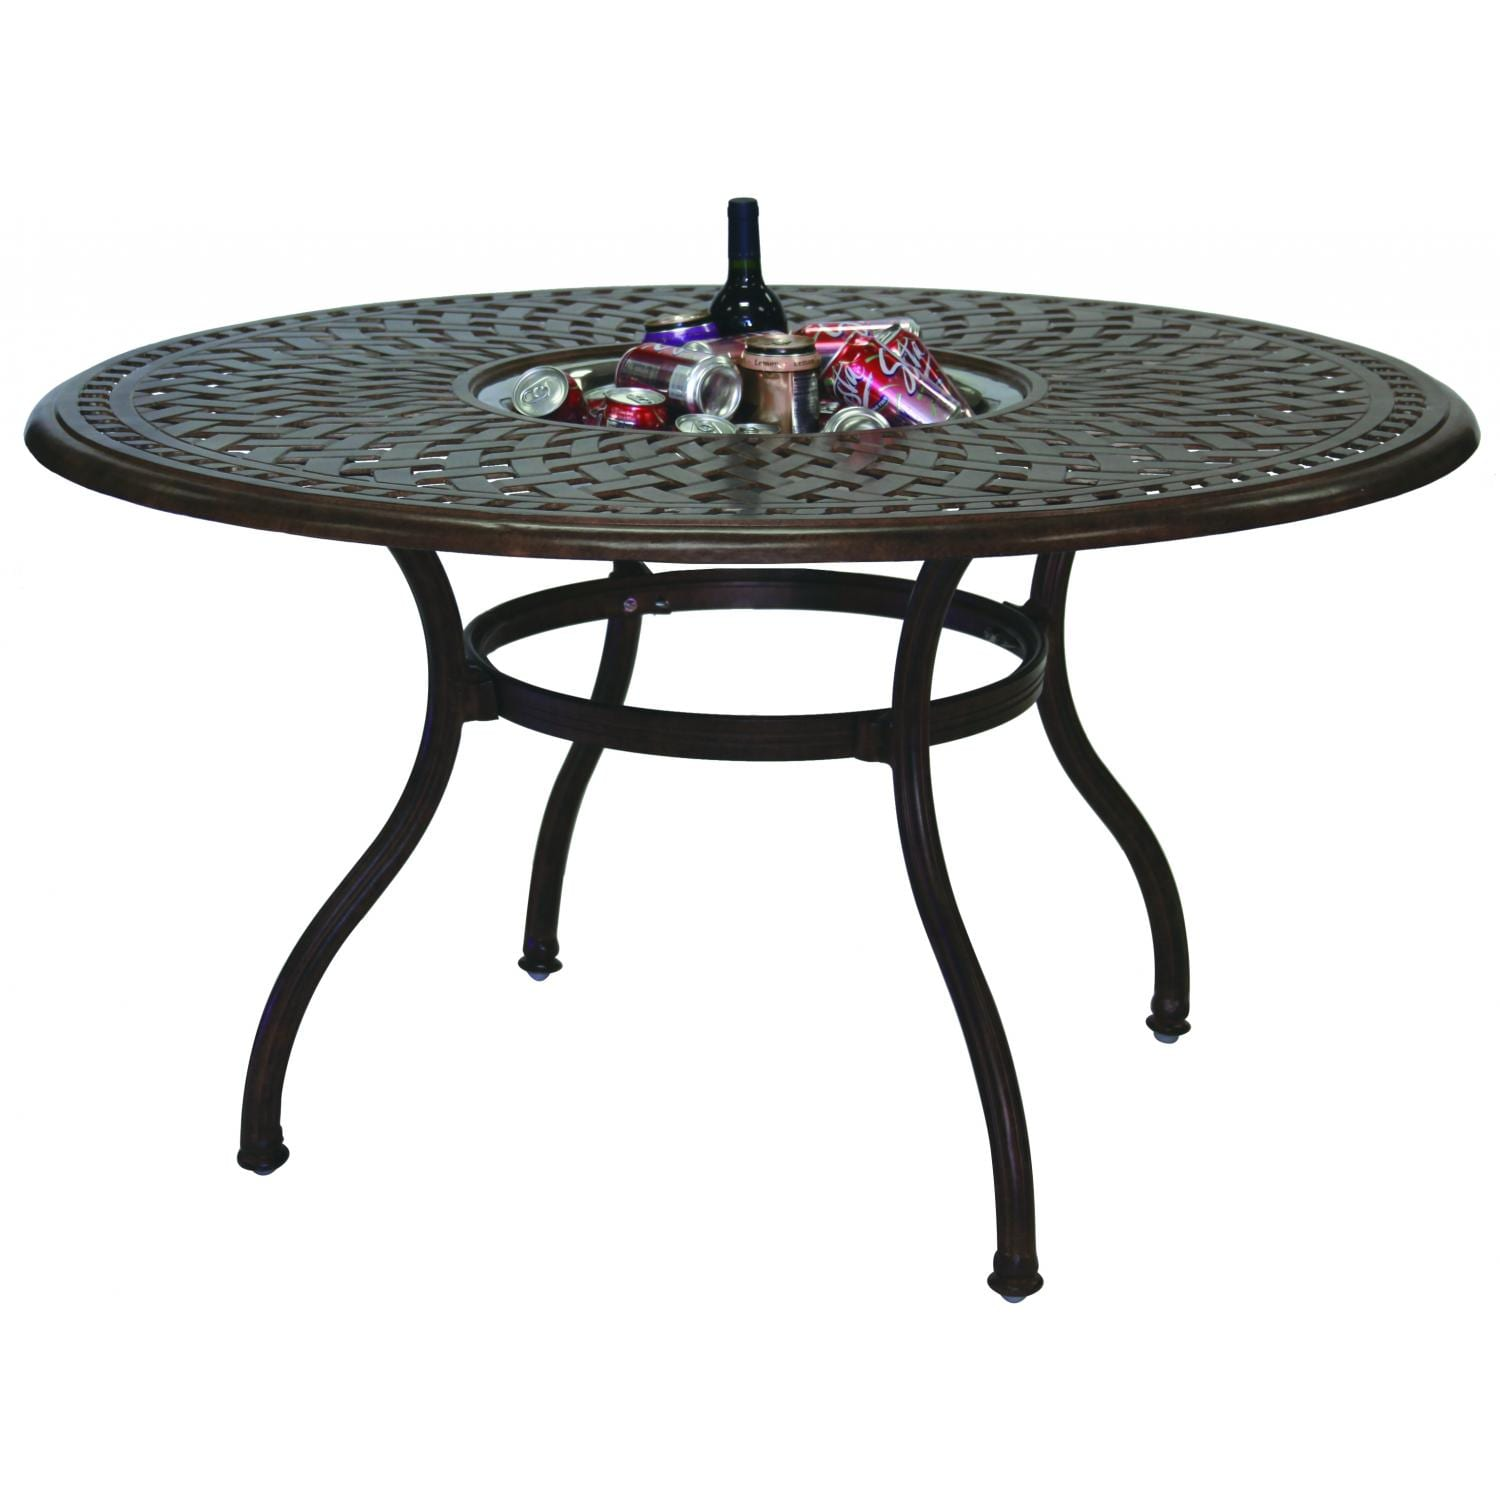 Darlee Series 60 Patio Dining Table With Ice Bucket Insert - Open